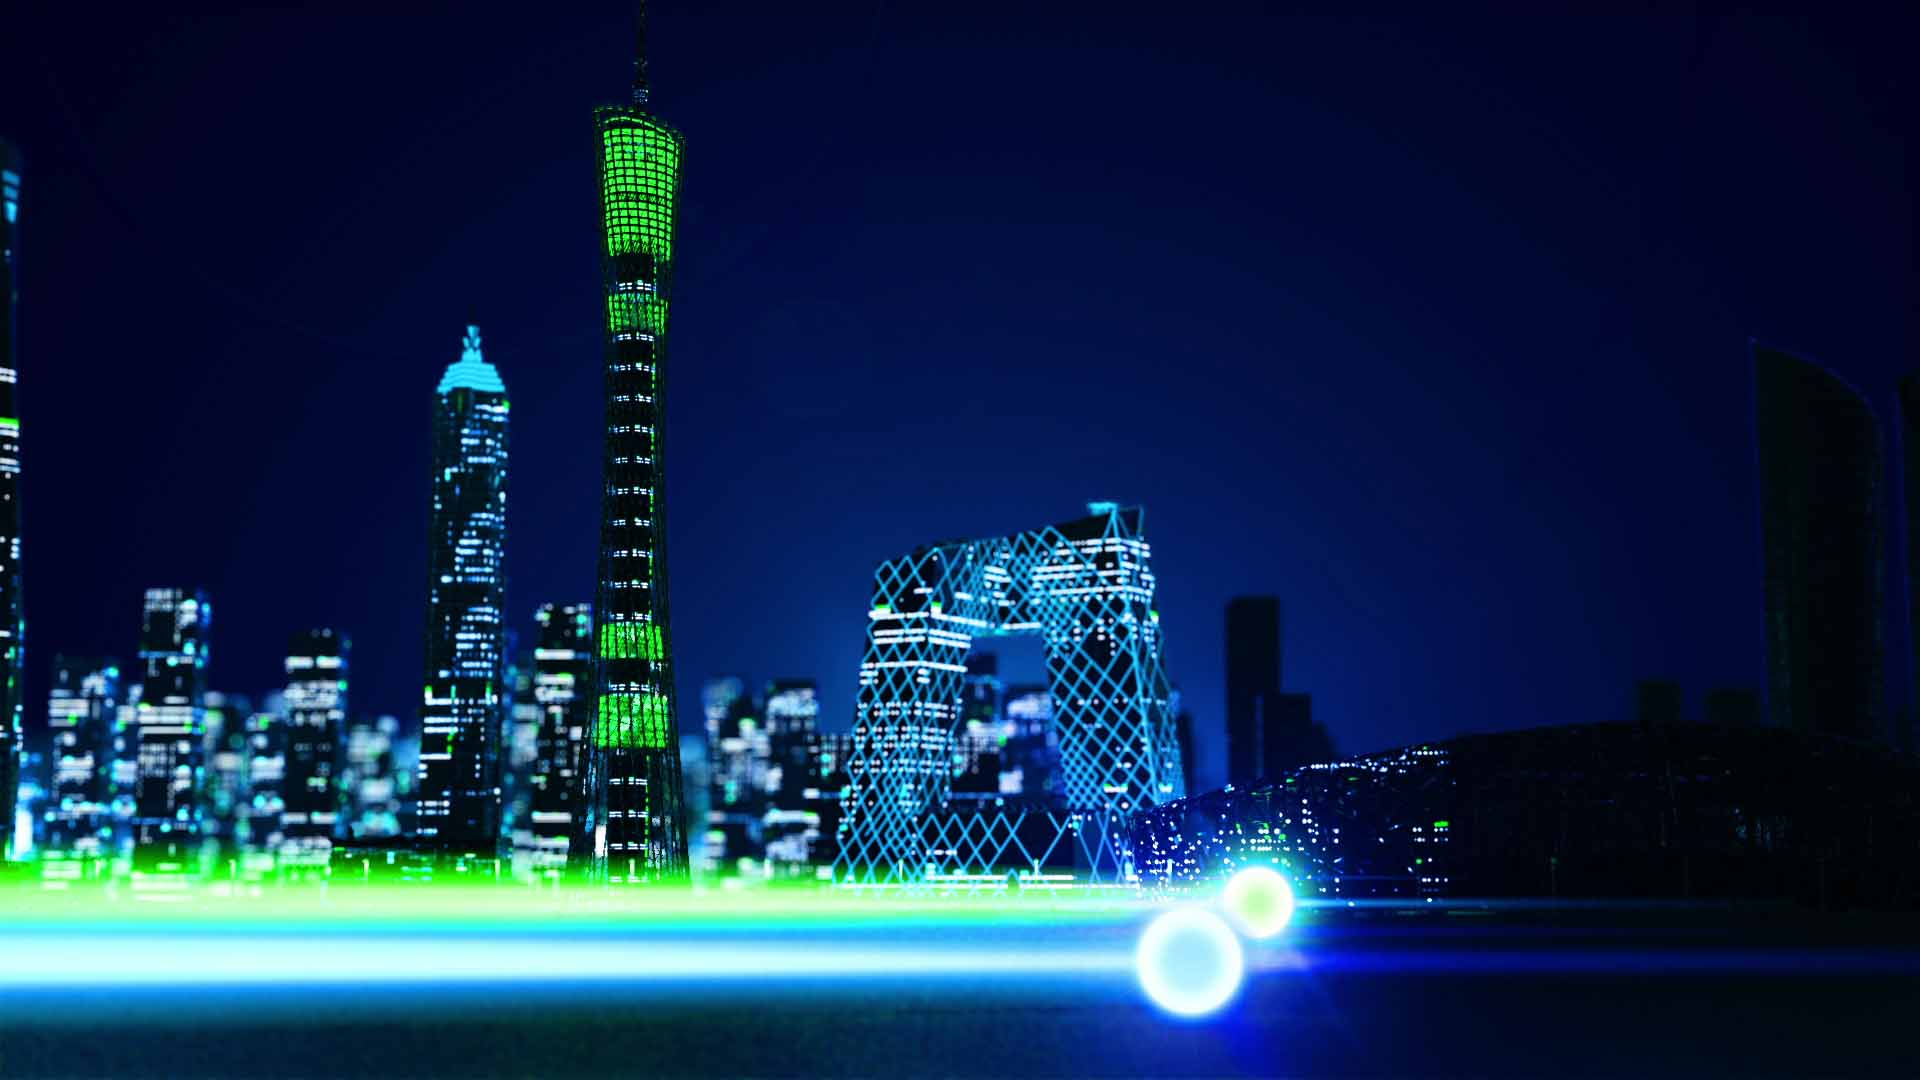 Two animated glowing spheres with light trails fly past Chinese landmarks